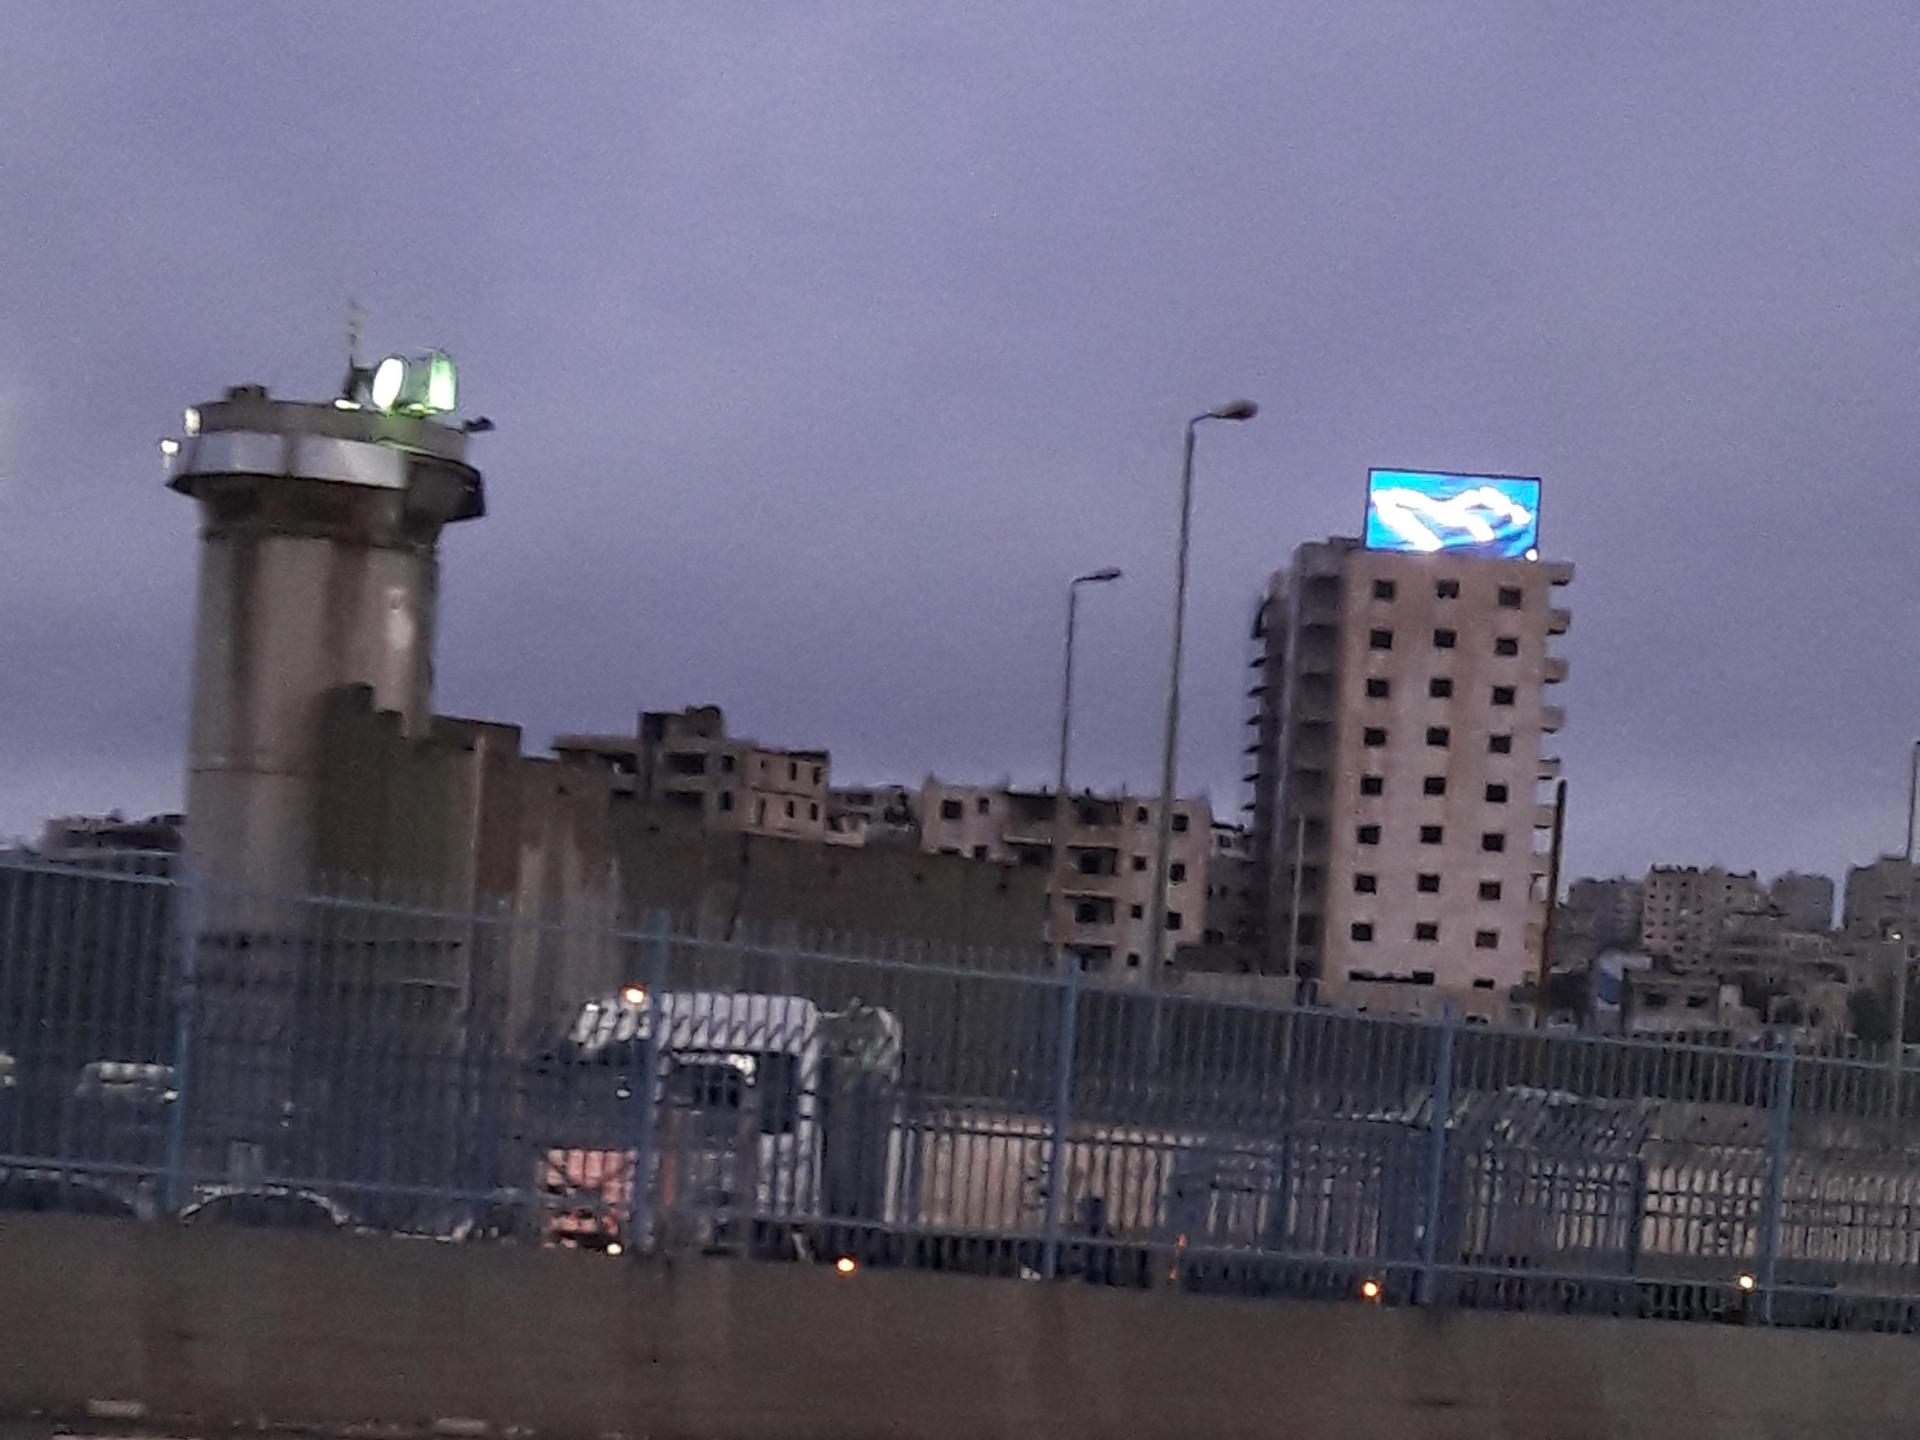 A neon sign, a wall and a watchtower